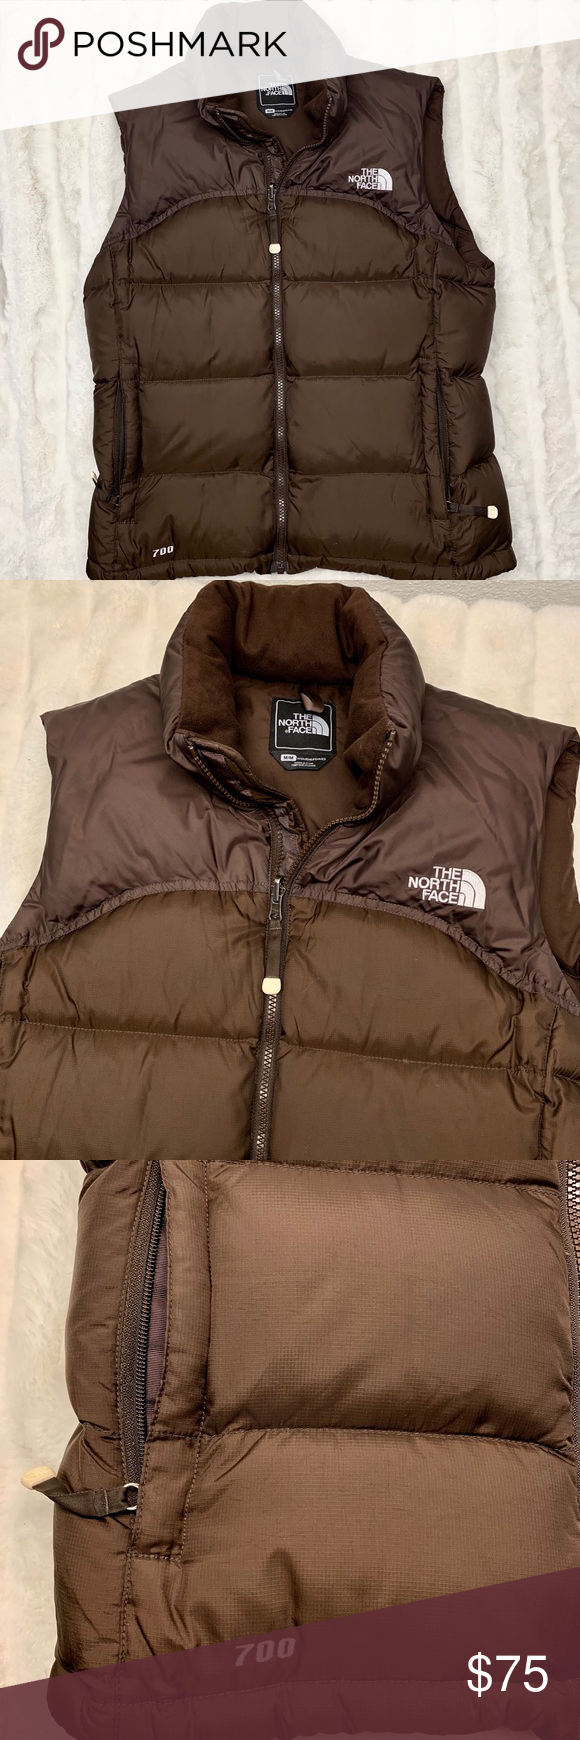 The North Face Nuptse 700 Down Puffer Brown Vest Brown Vest North Face Jacket North Face Nuptse [ 1740 x 580 Pixel ]